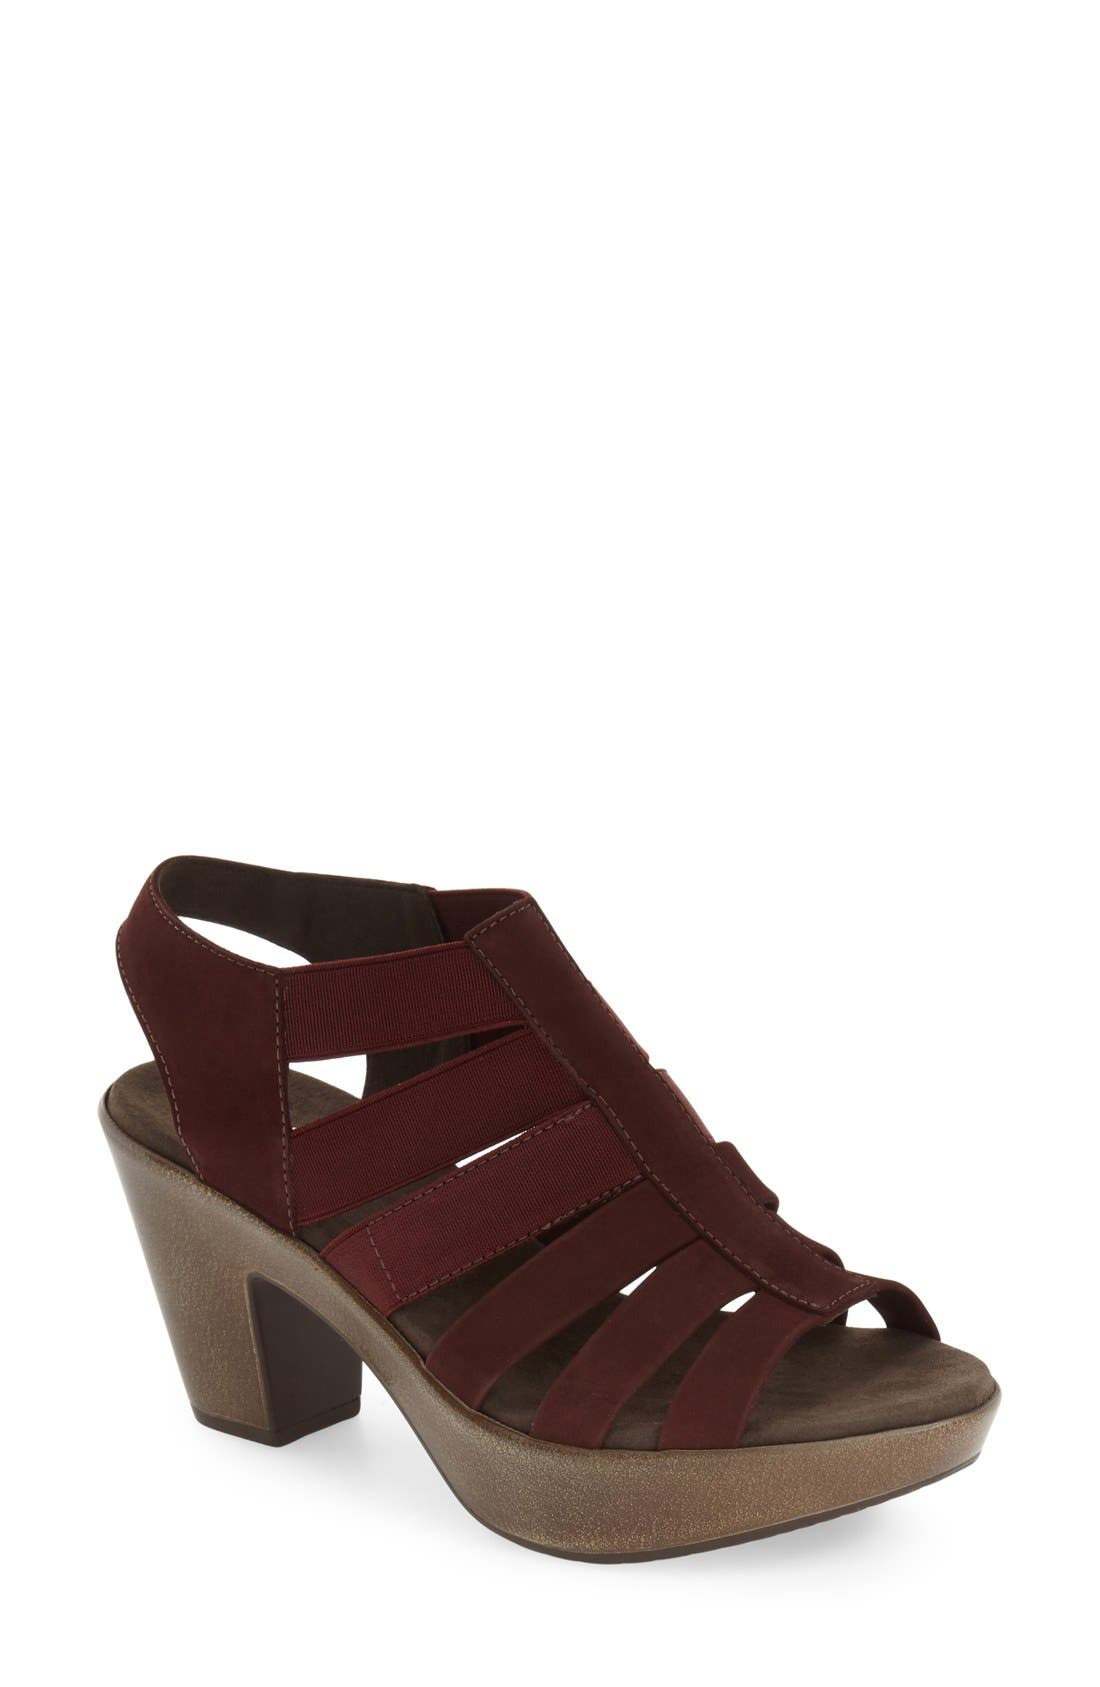 Alternate Image 1 Selected - Munro 'Cookie' Slingback Sandal (Women)